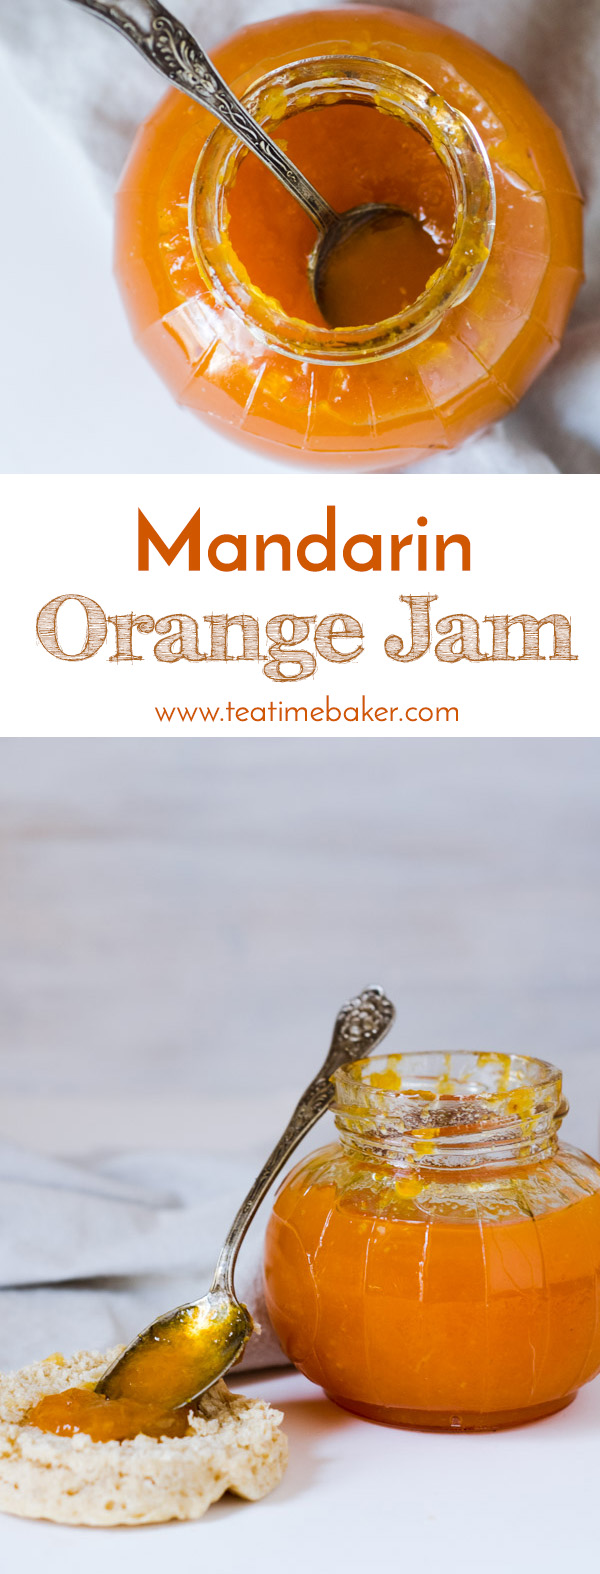 Chase the winter blues with a fresh batch of homemade Mandarin Orange Jam. This quick and easy to make jam recipe uses just five ingredients! No pectin or canning required. | The Teatime Baker | Easy jam recipe | low sugar jam | #mandarinorangejamrecipe #easylowsugarjam